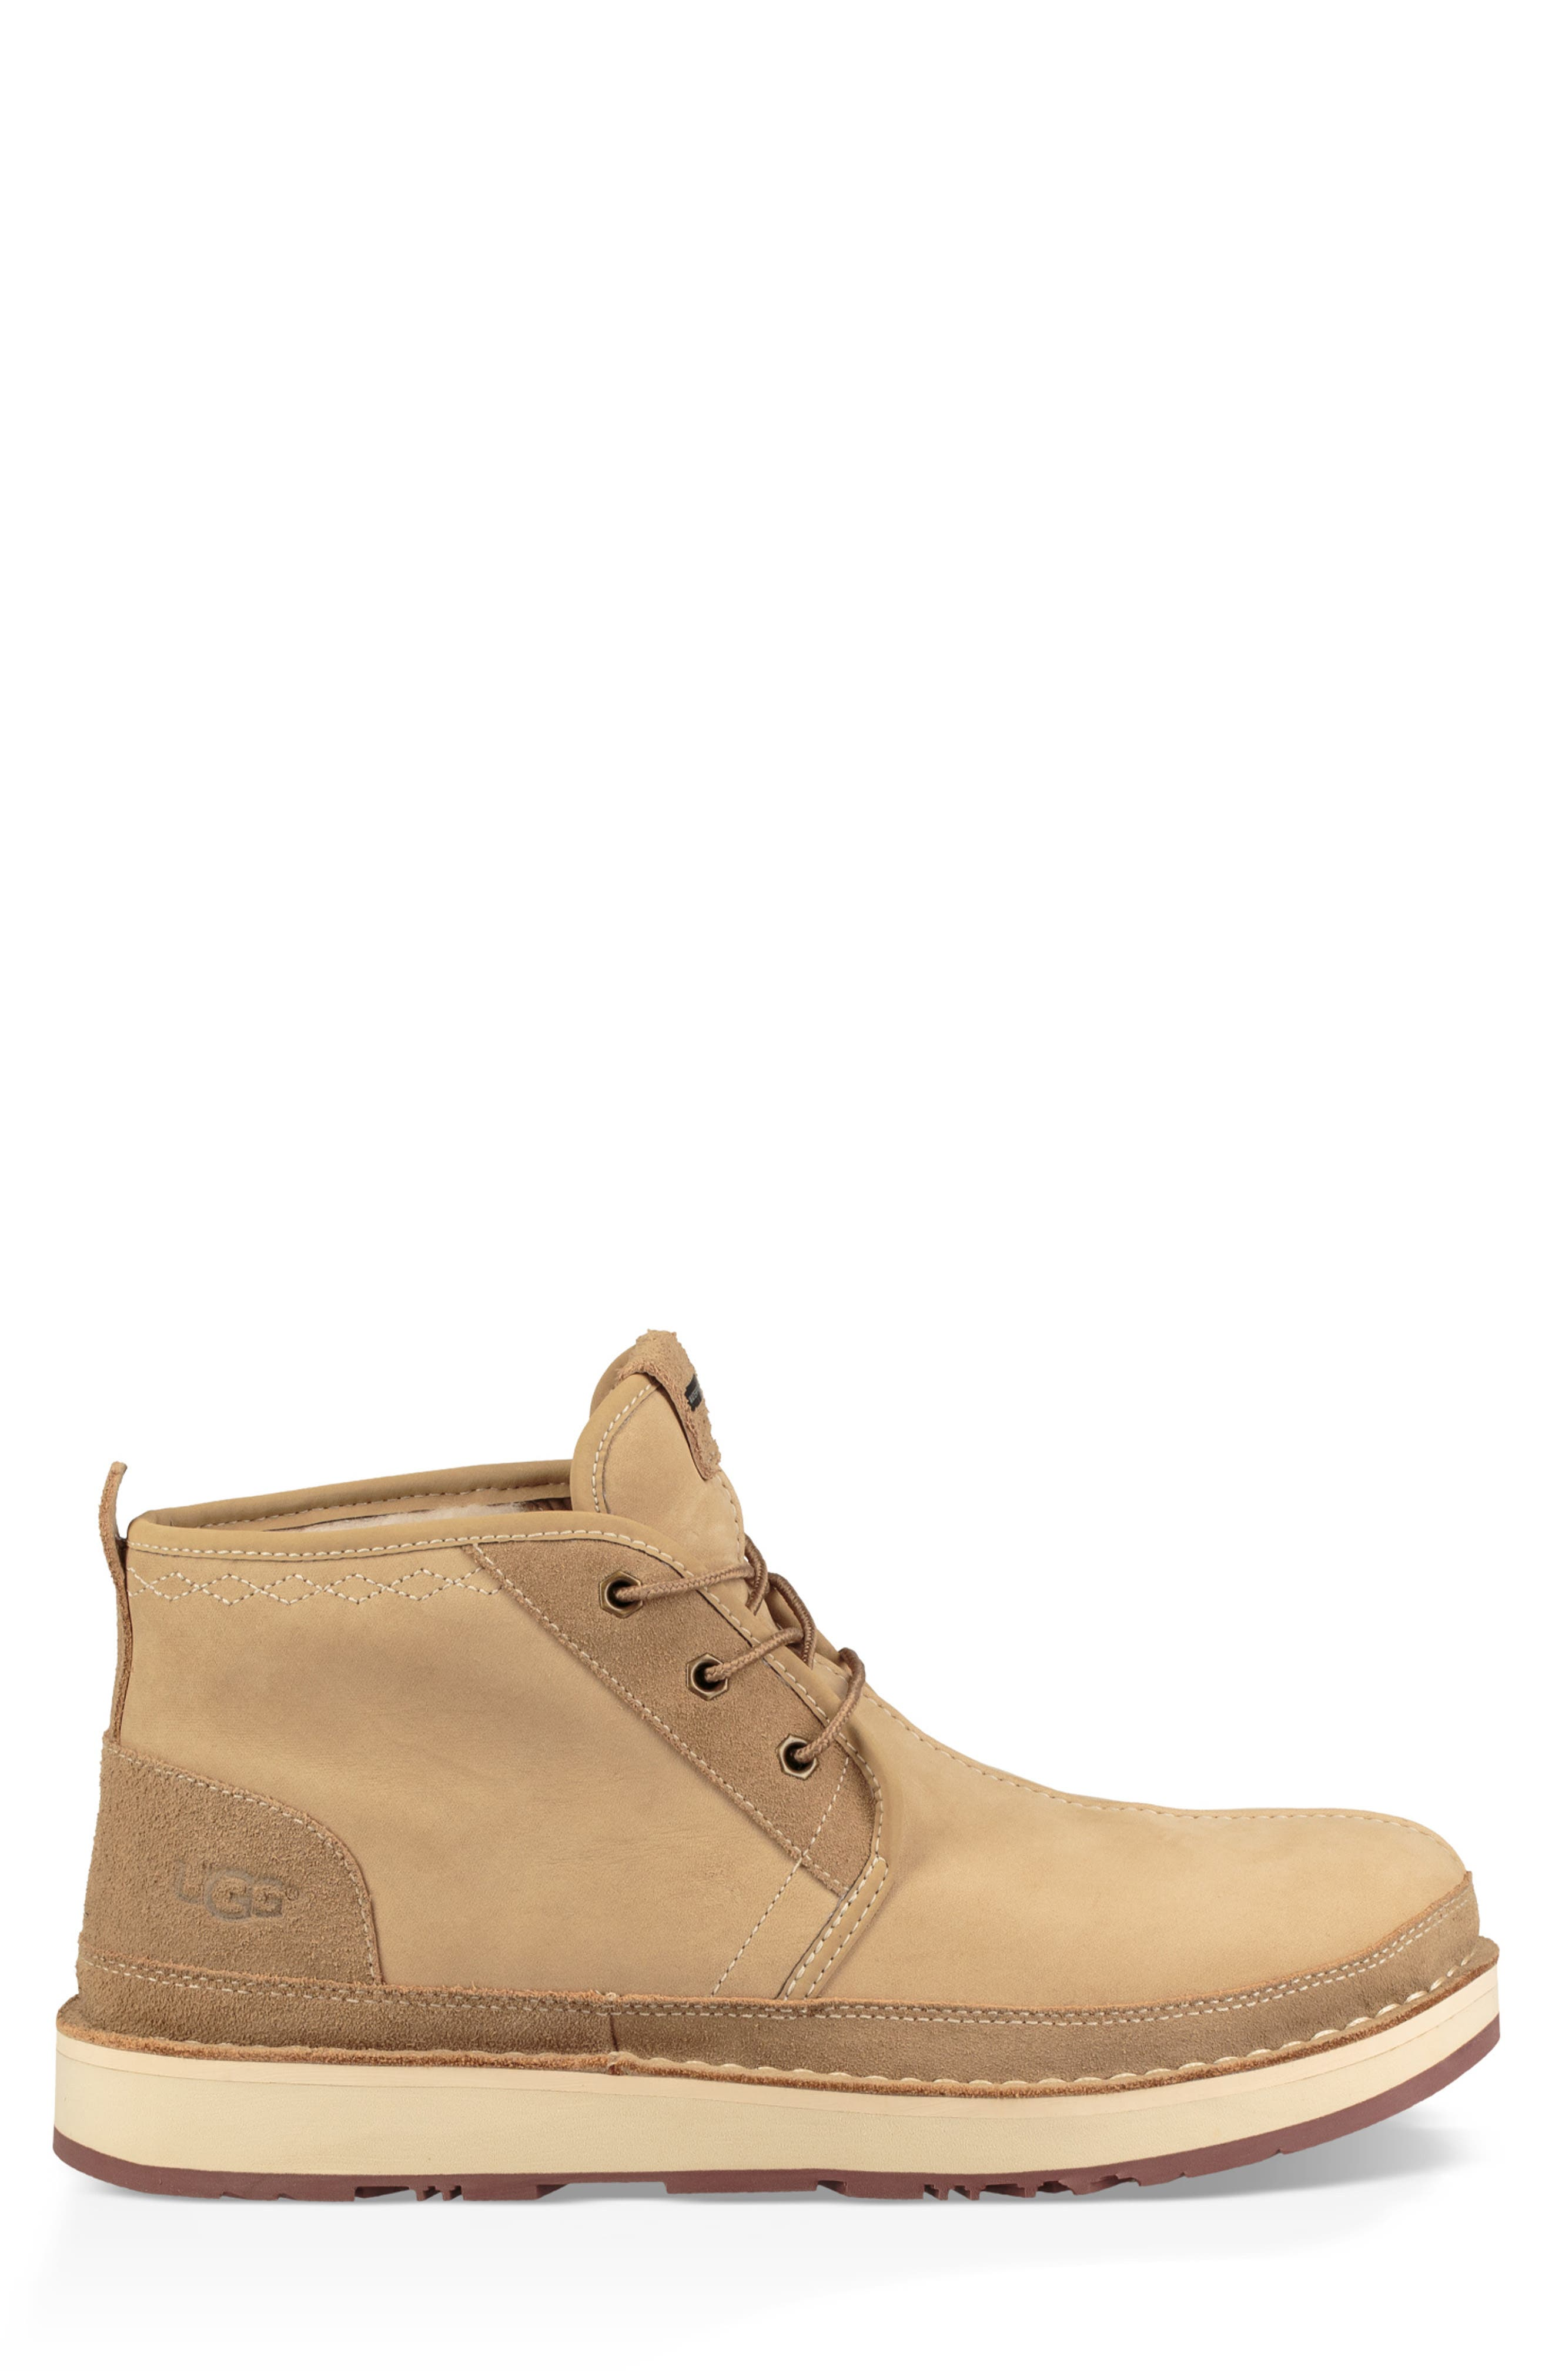 Avalance Neumel Waterproof Boot,                             Alternate thumbnail 3, color,                             DESERT TAN